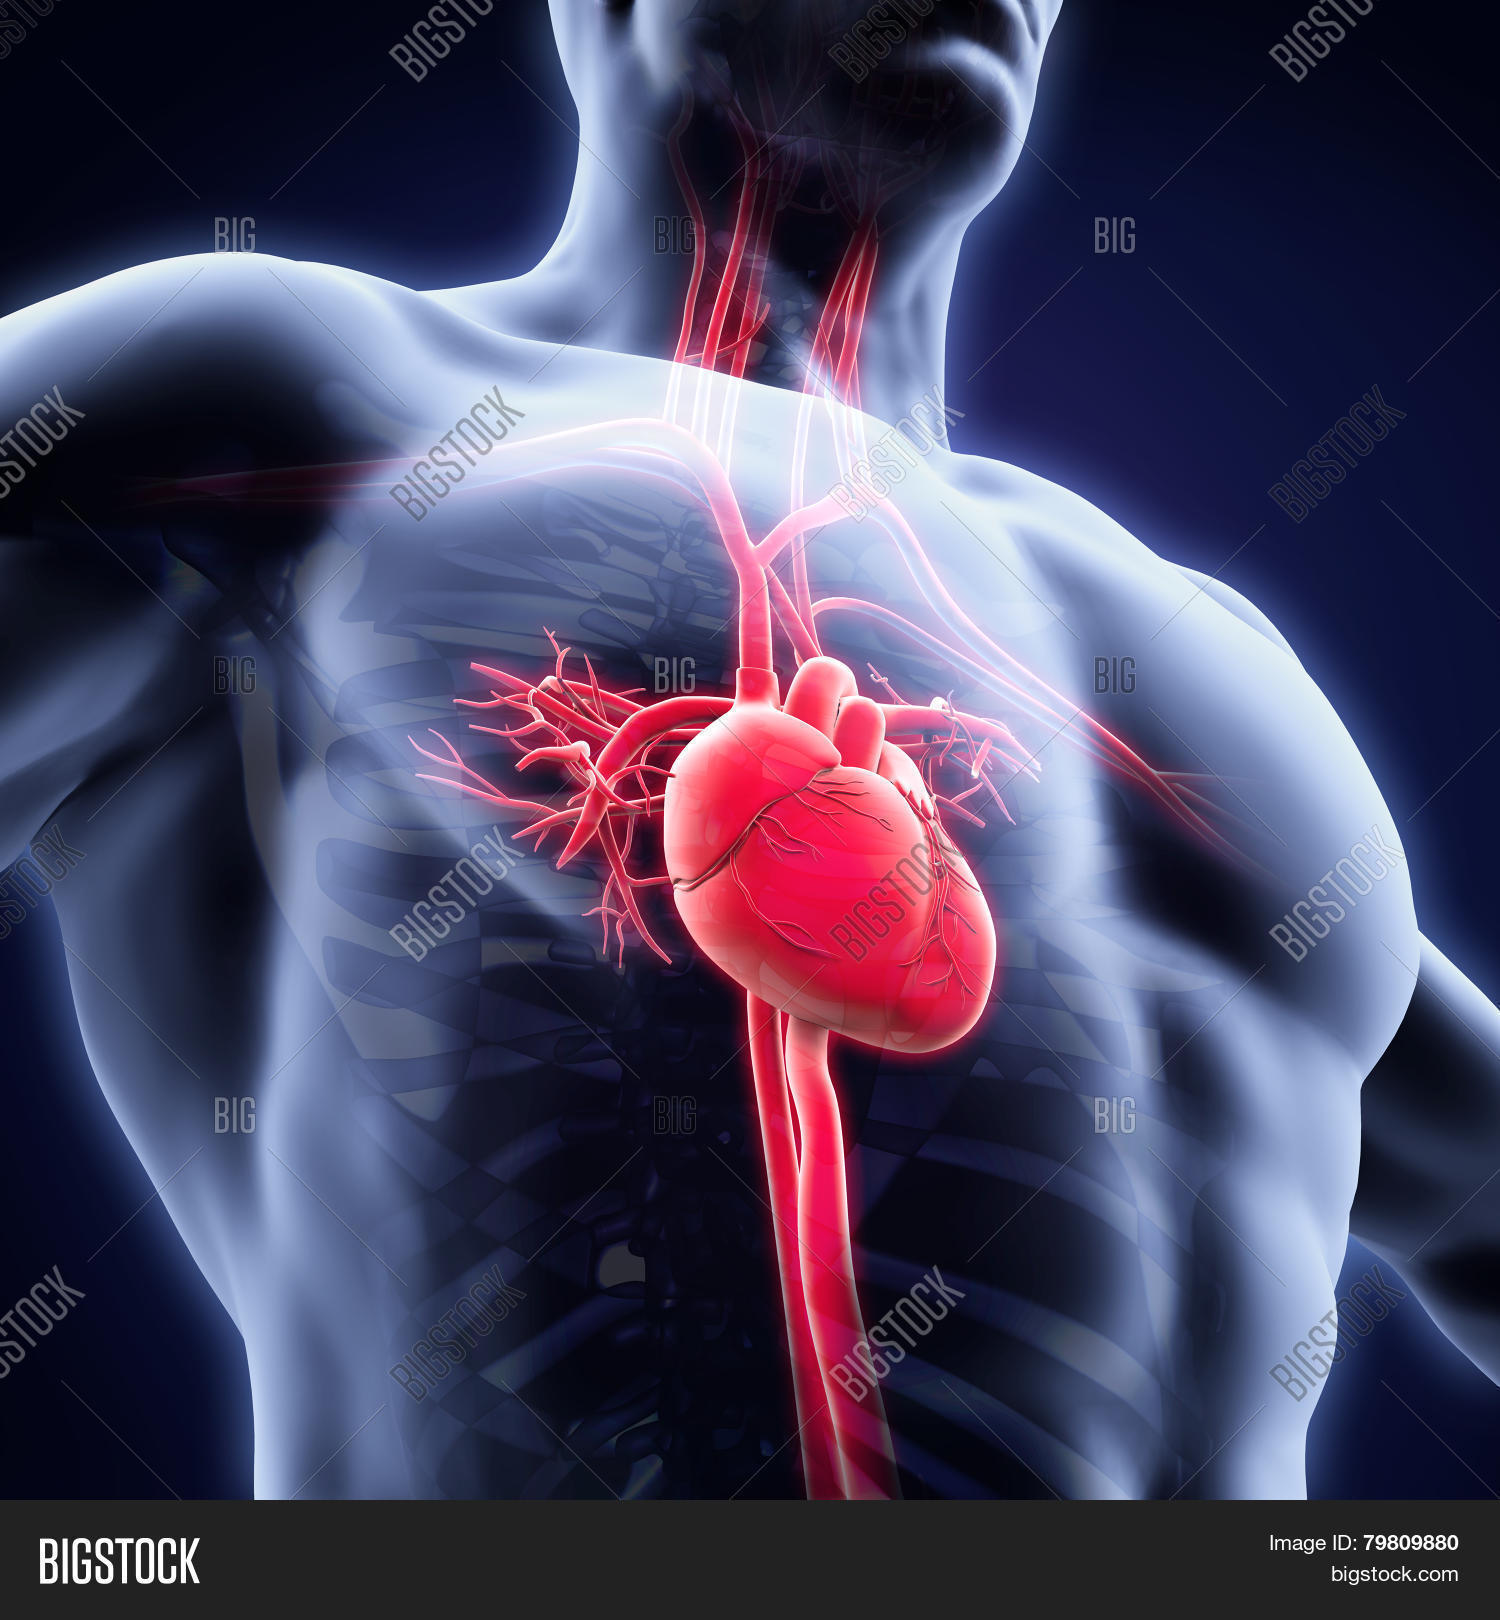 Human Heart Anatomy Image Photo Free Trial Bigstock